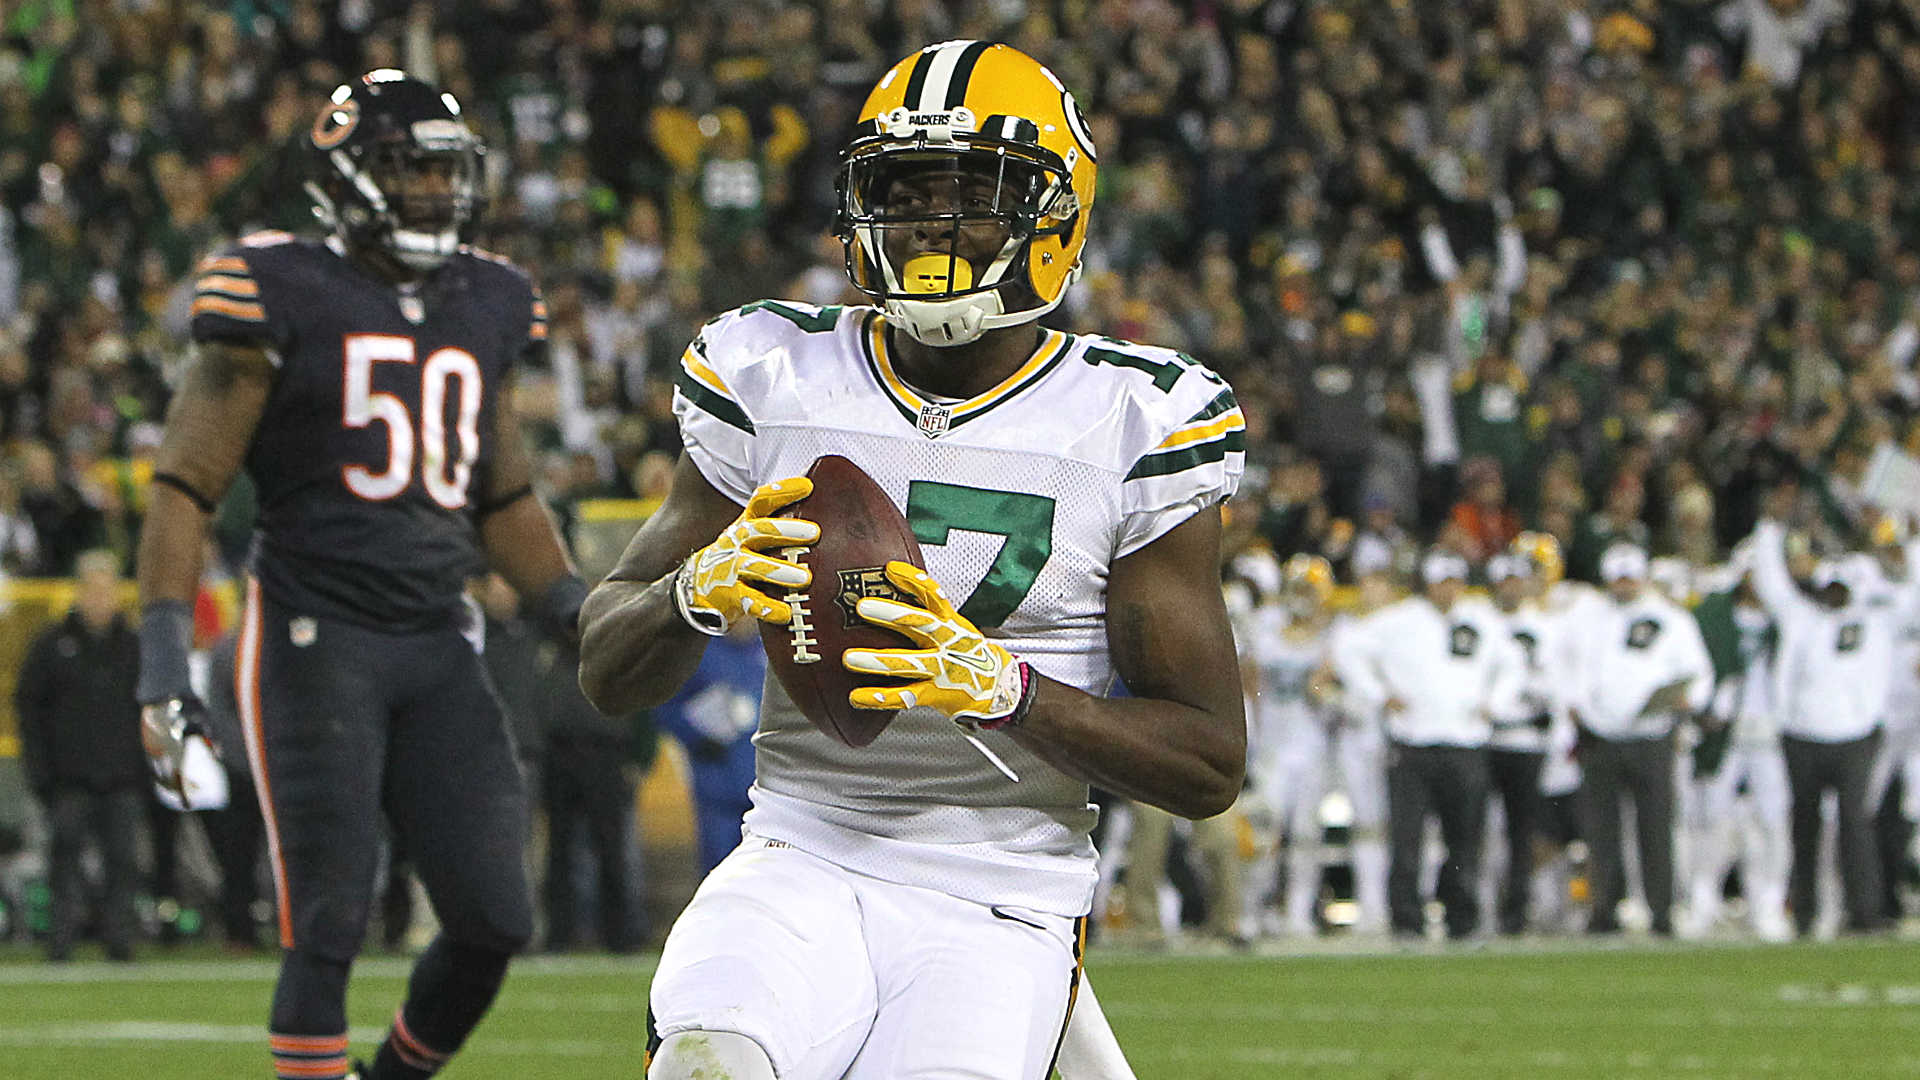 Baby Jesus' Davante Adams steps up for Packers on record night